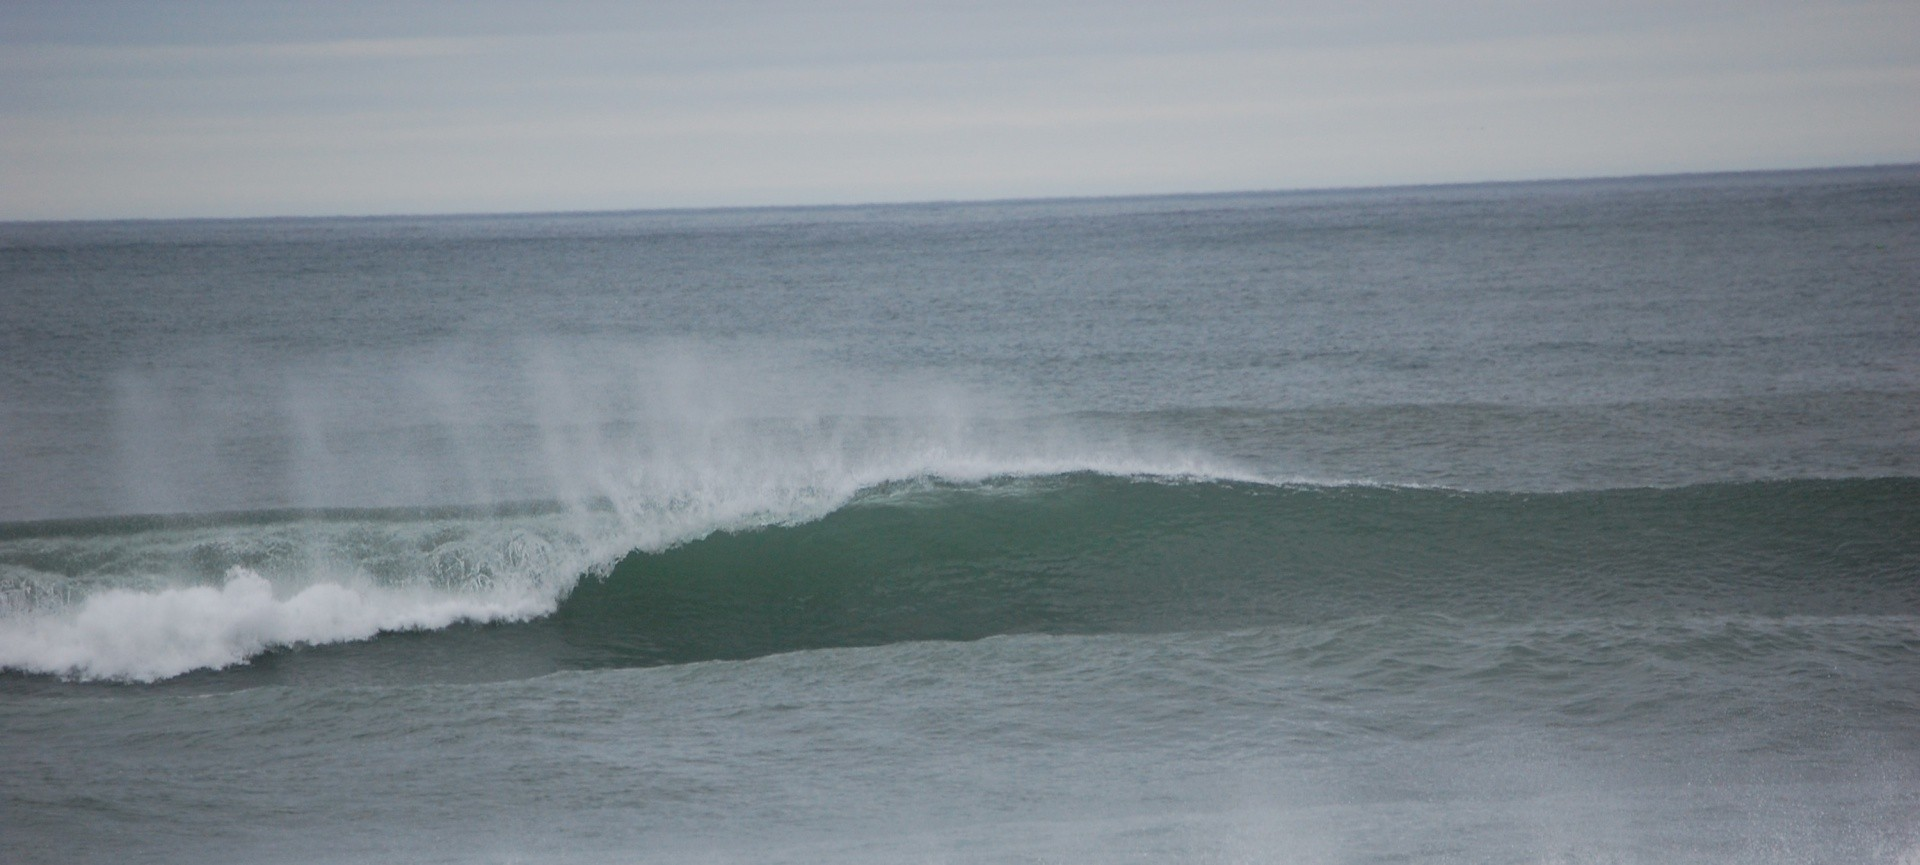 sgood's photo of Lawrencetown